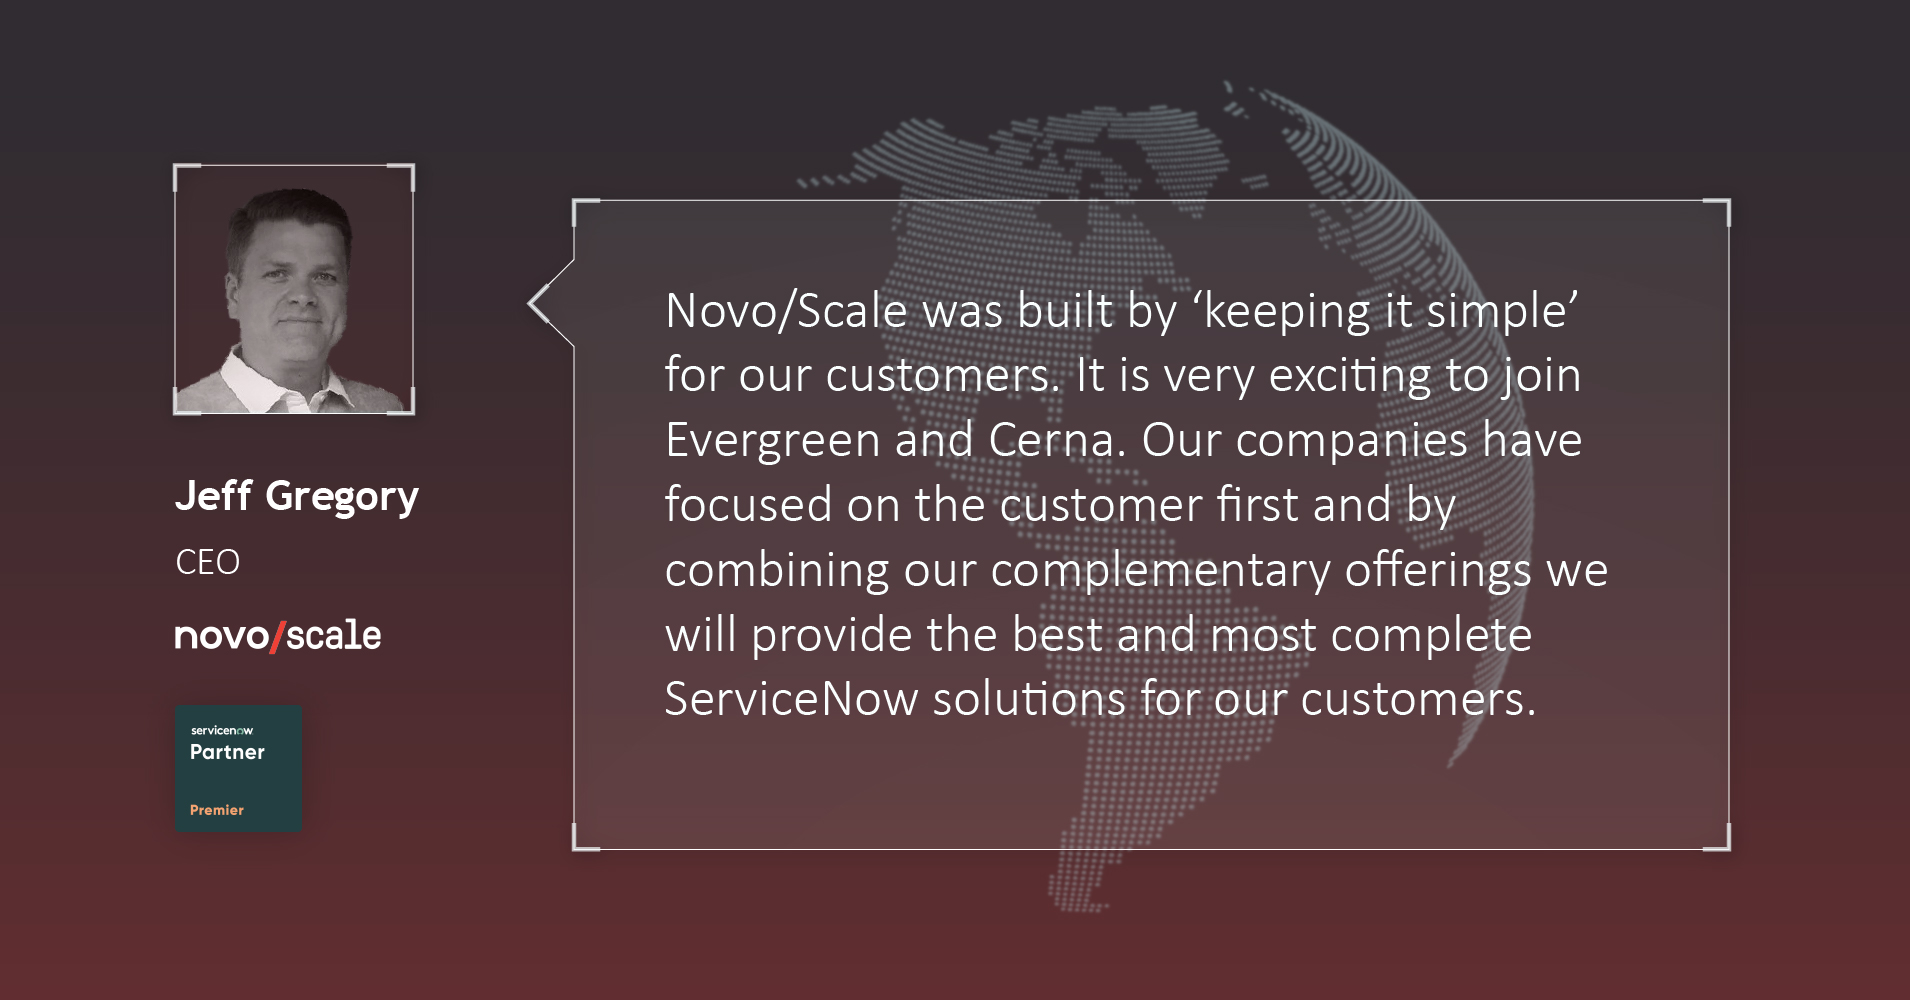 novoscale_merger announcement image_2021-01 jeff quote